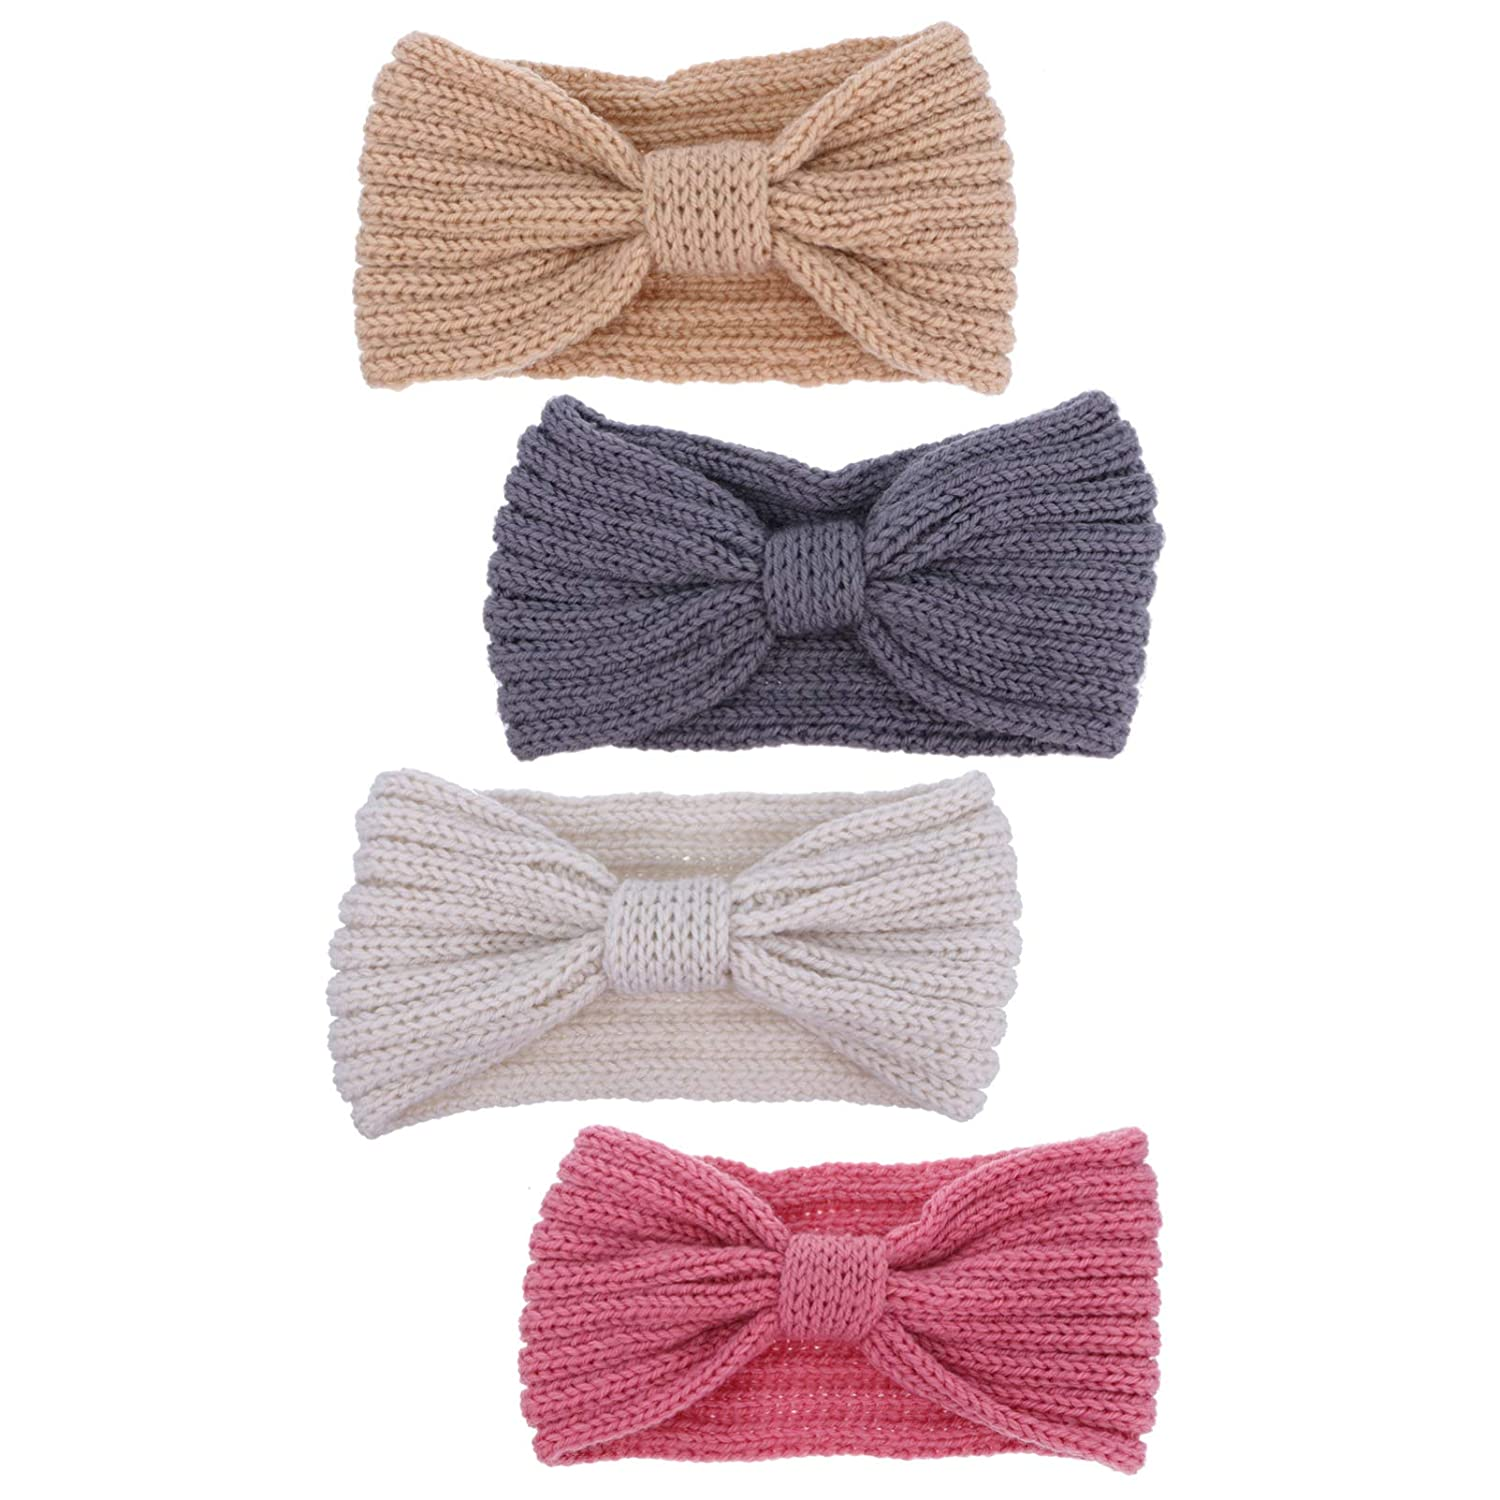 FRCOLOR 4pcs Knitted Headband Twist Bow Hairband Solid Color Wintter Crochet Ear Warmer Head Wraps for Women